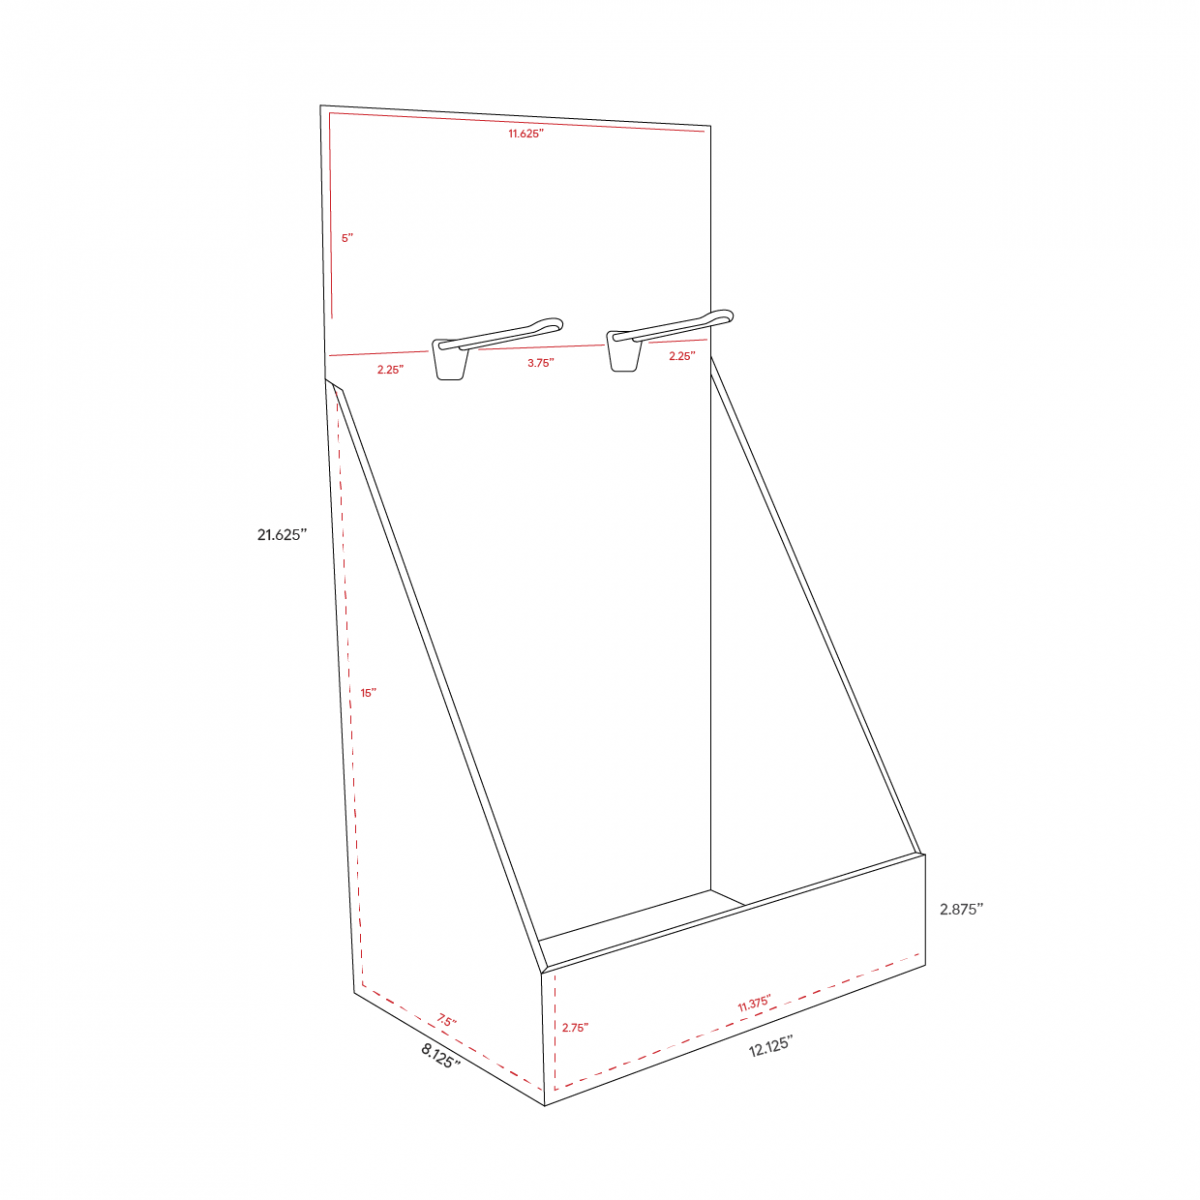 Cardboard counter displays with 2 pegs at the top - dimensions